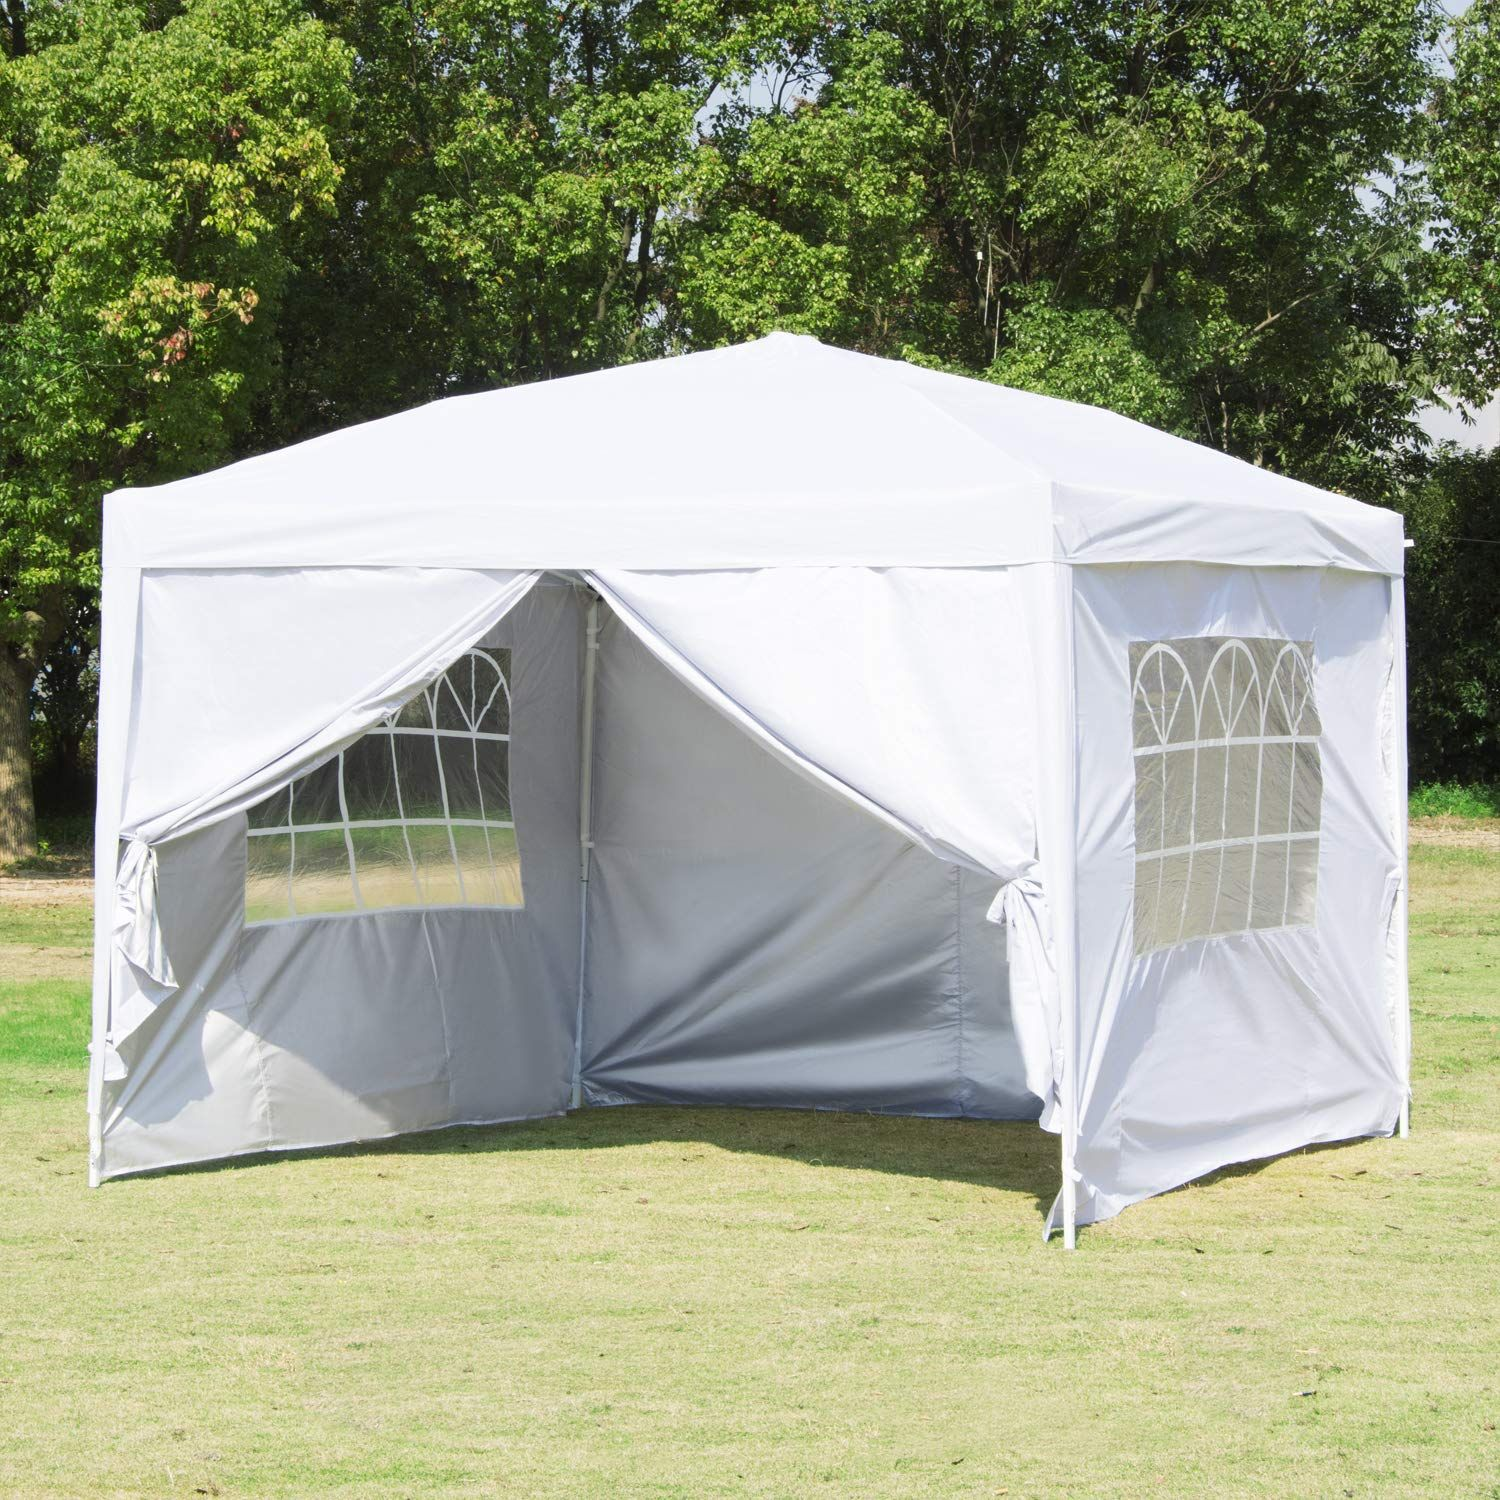 Clearance Outdoor Party Tent With 4 Side Walls 10 X 10 White Patio Gazebo Tent For Outside 2020 Upgraded Sunshade Shelter Gazebo Canopy Waterproof Outdoor In 2020 Gazebo Tent Canopy Tent Canopy Outdoor